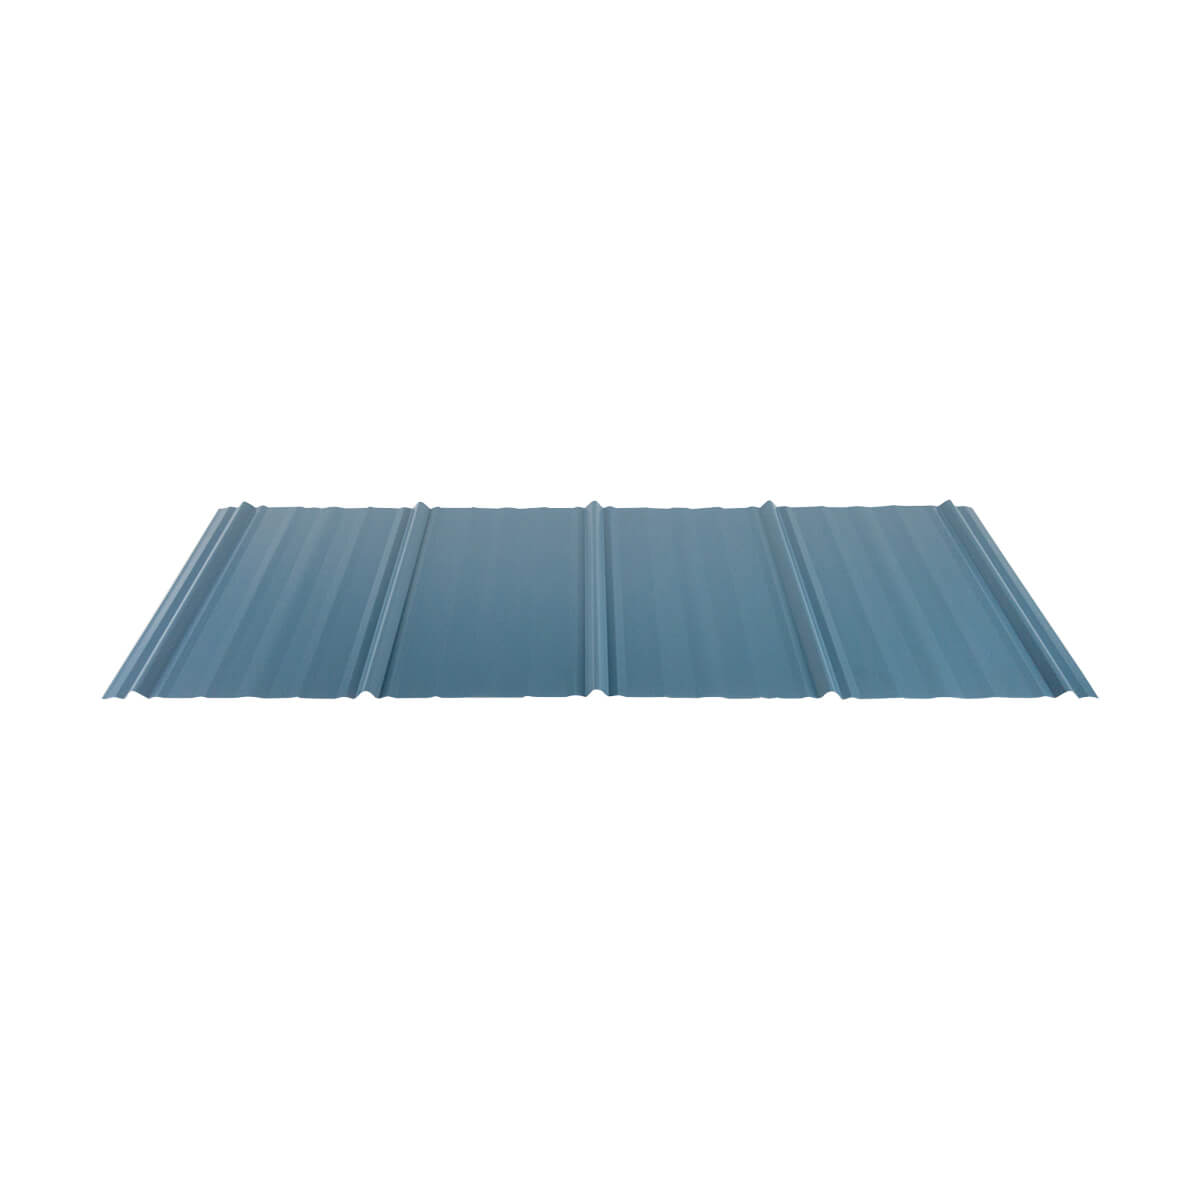 "WeatherShield 1 Metal Sheets or Panels - 32"" x 8'"